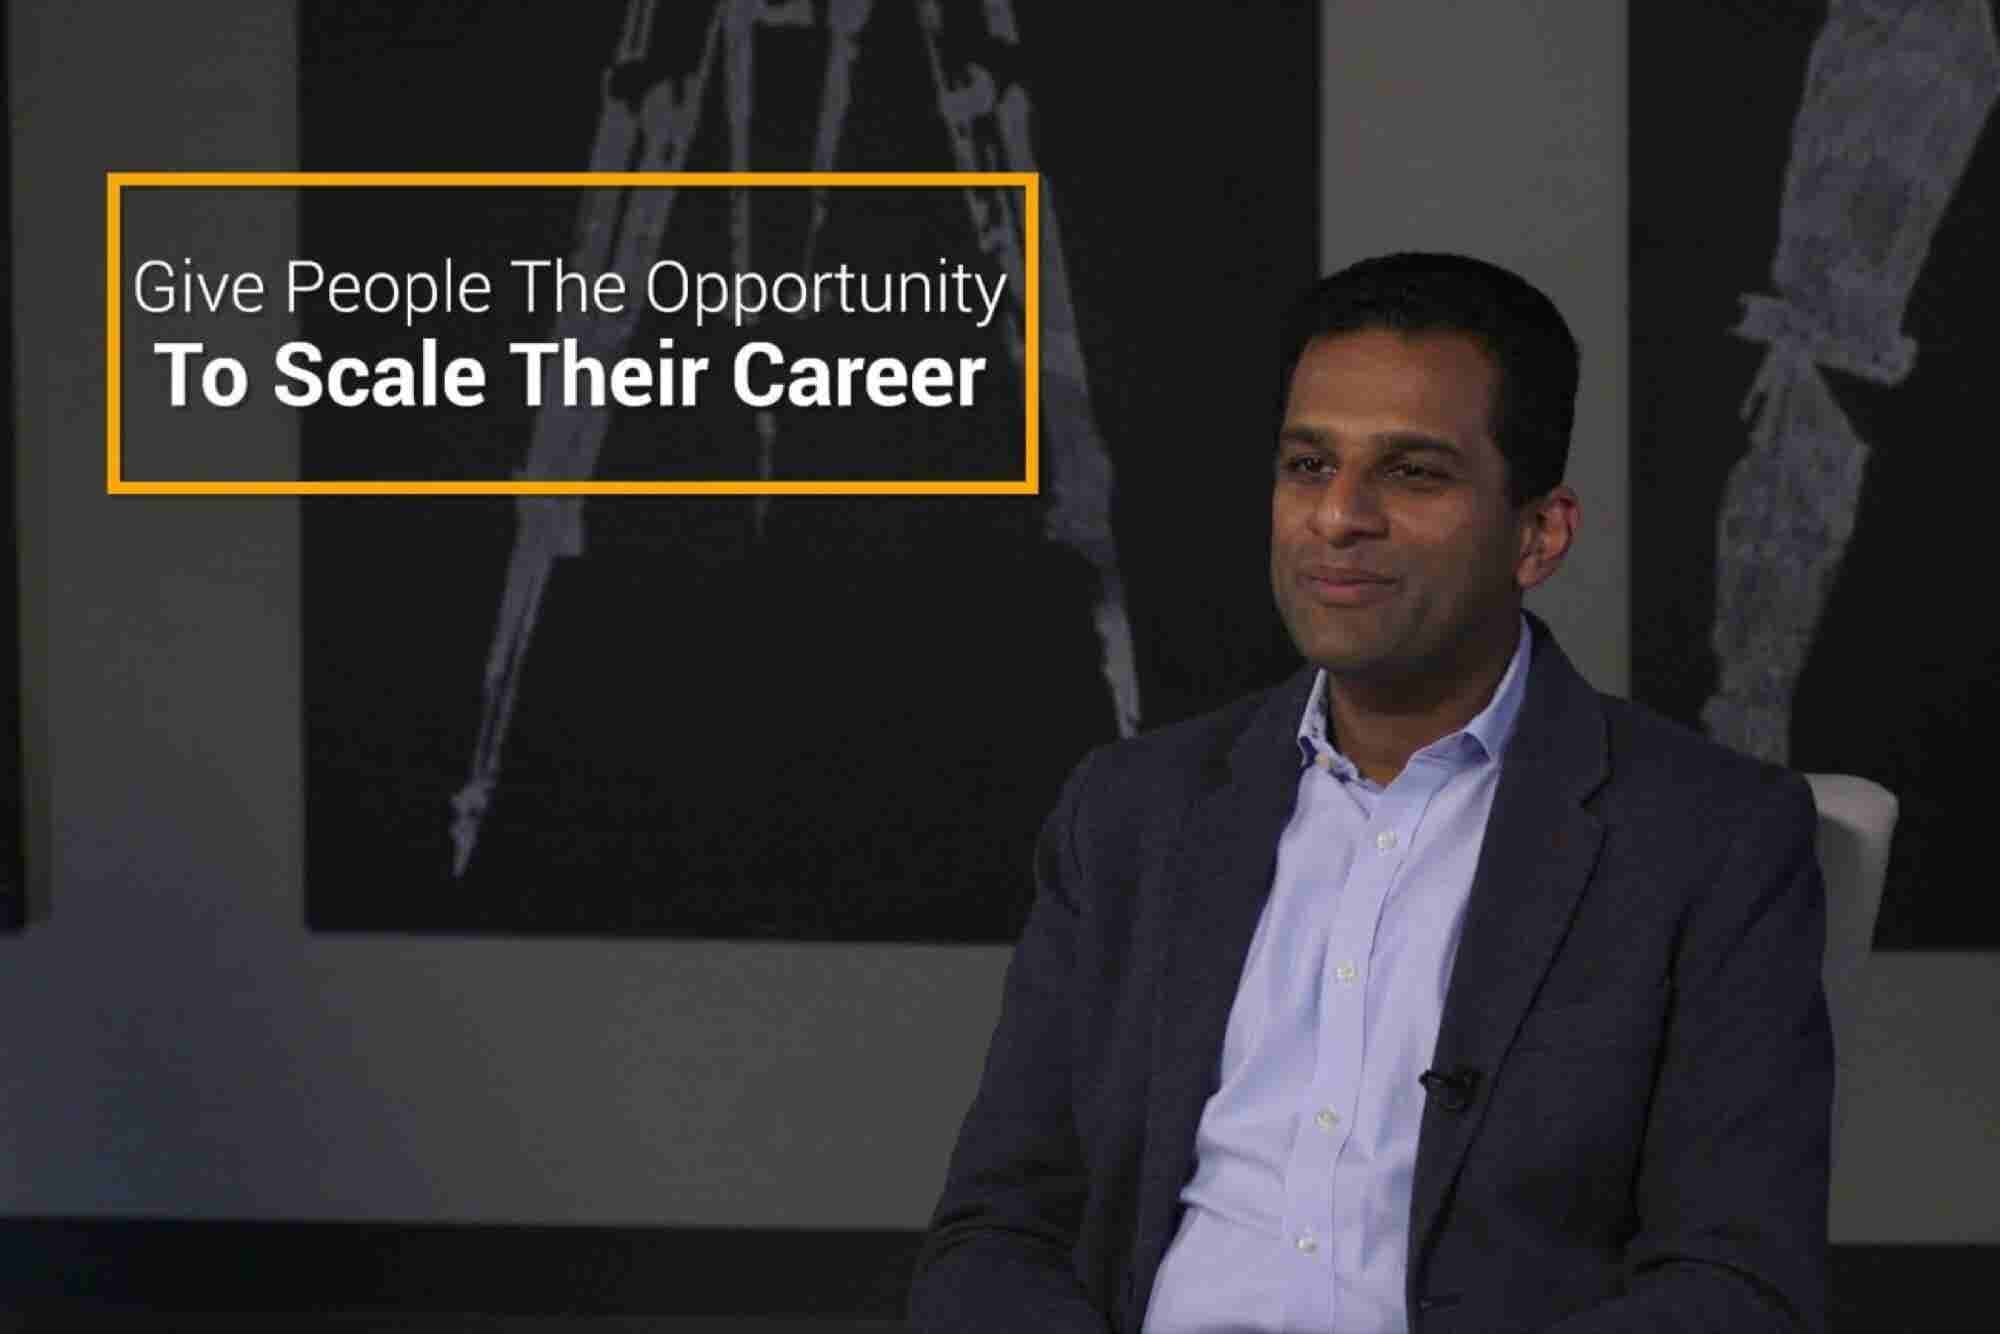 Give Your Employees the Opportunity to Scale Their Careers